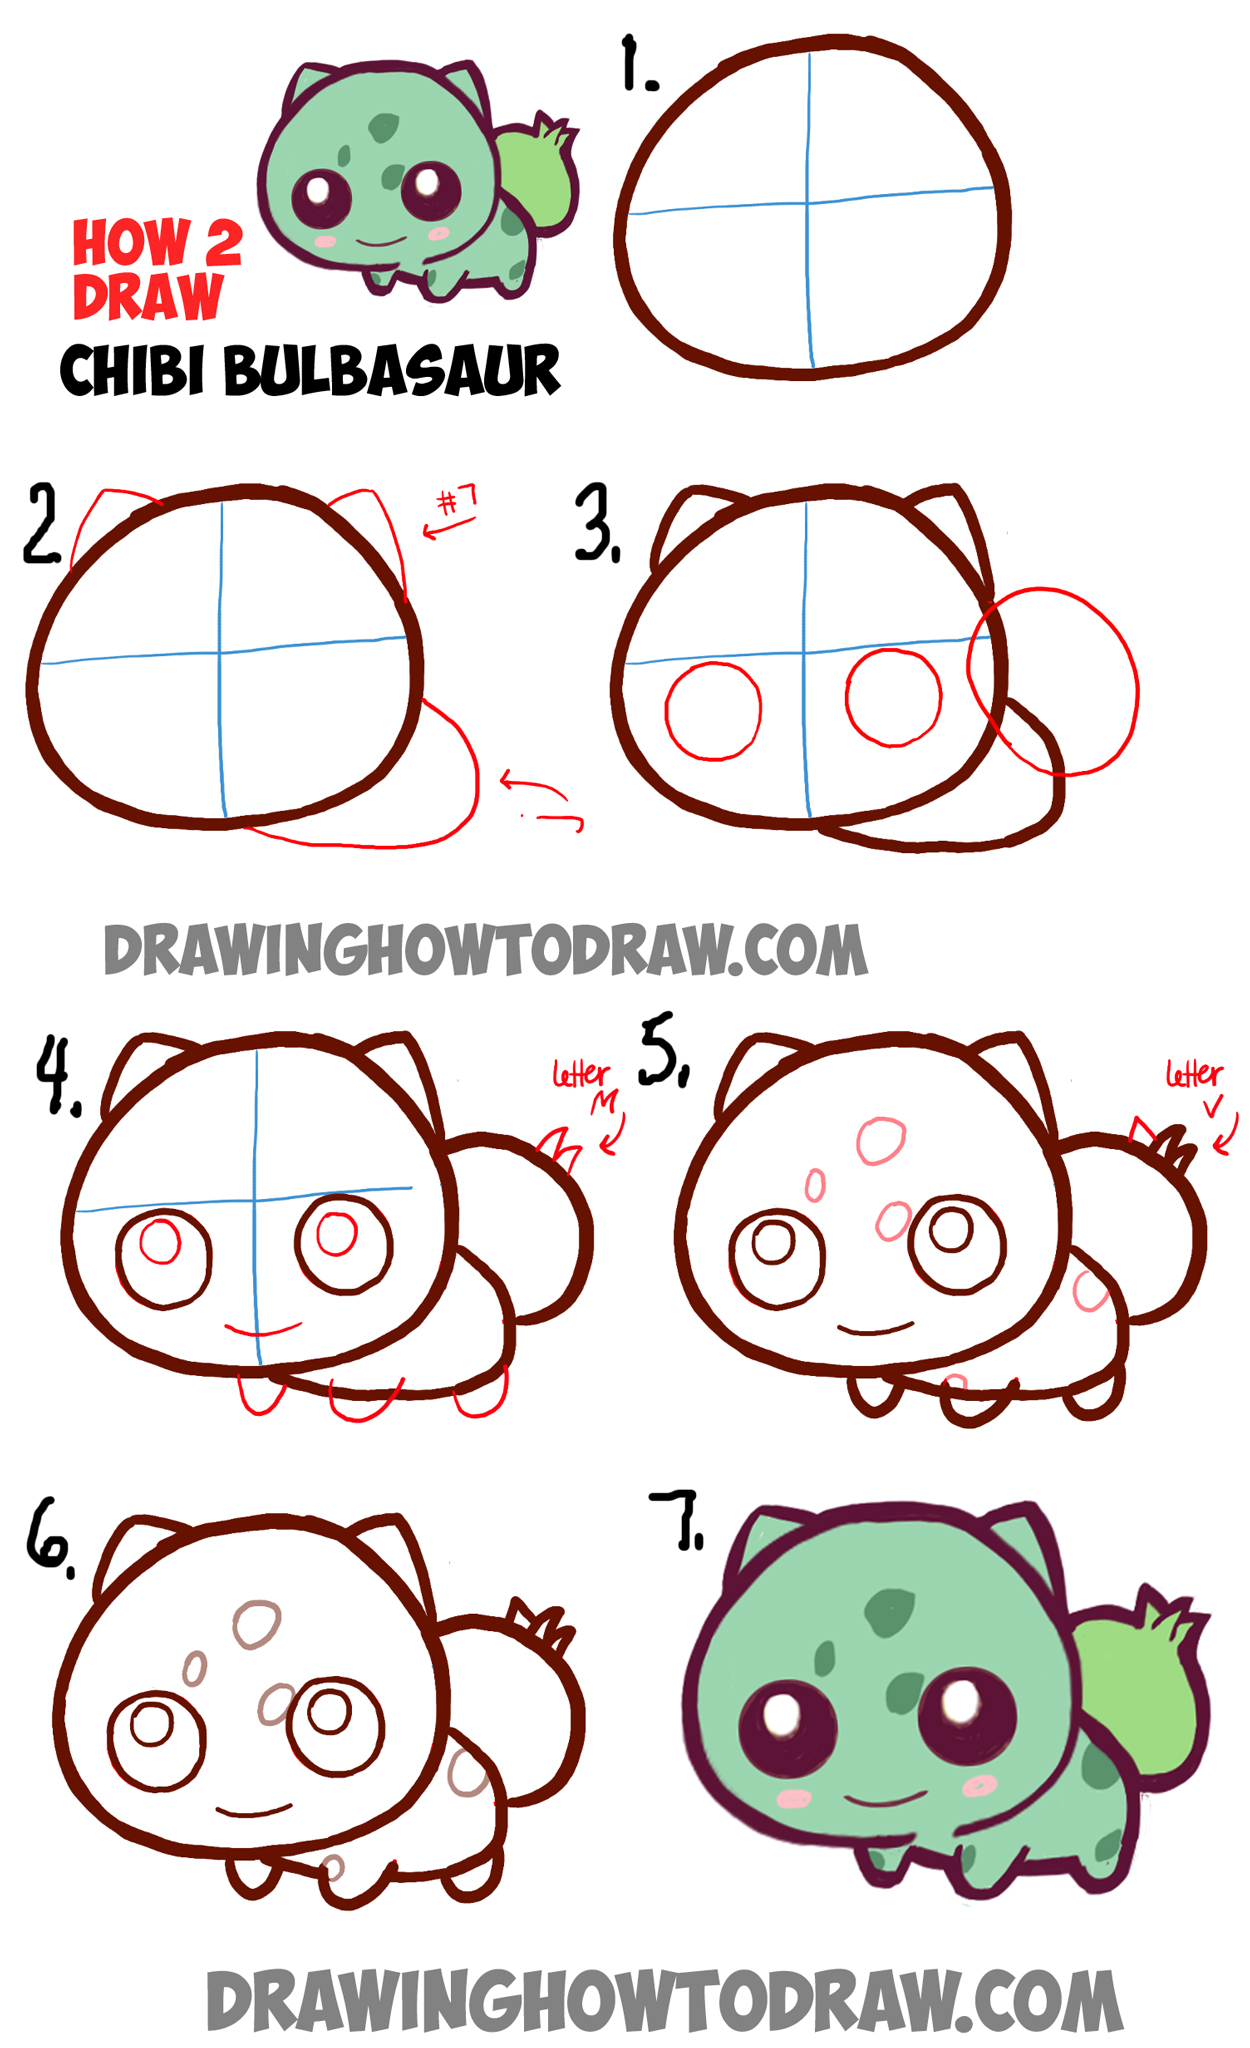 How to Draw Cute Baby Chibi Bulbasaur from Pokemon in Easy ...